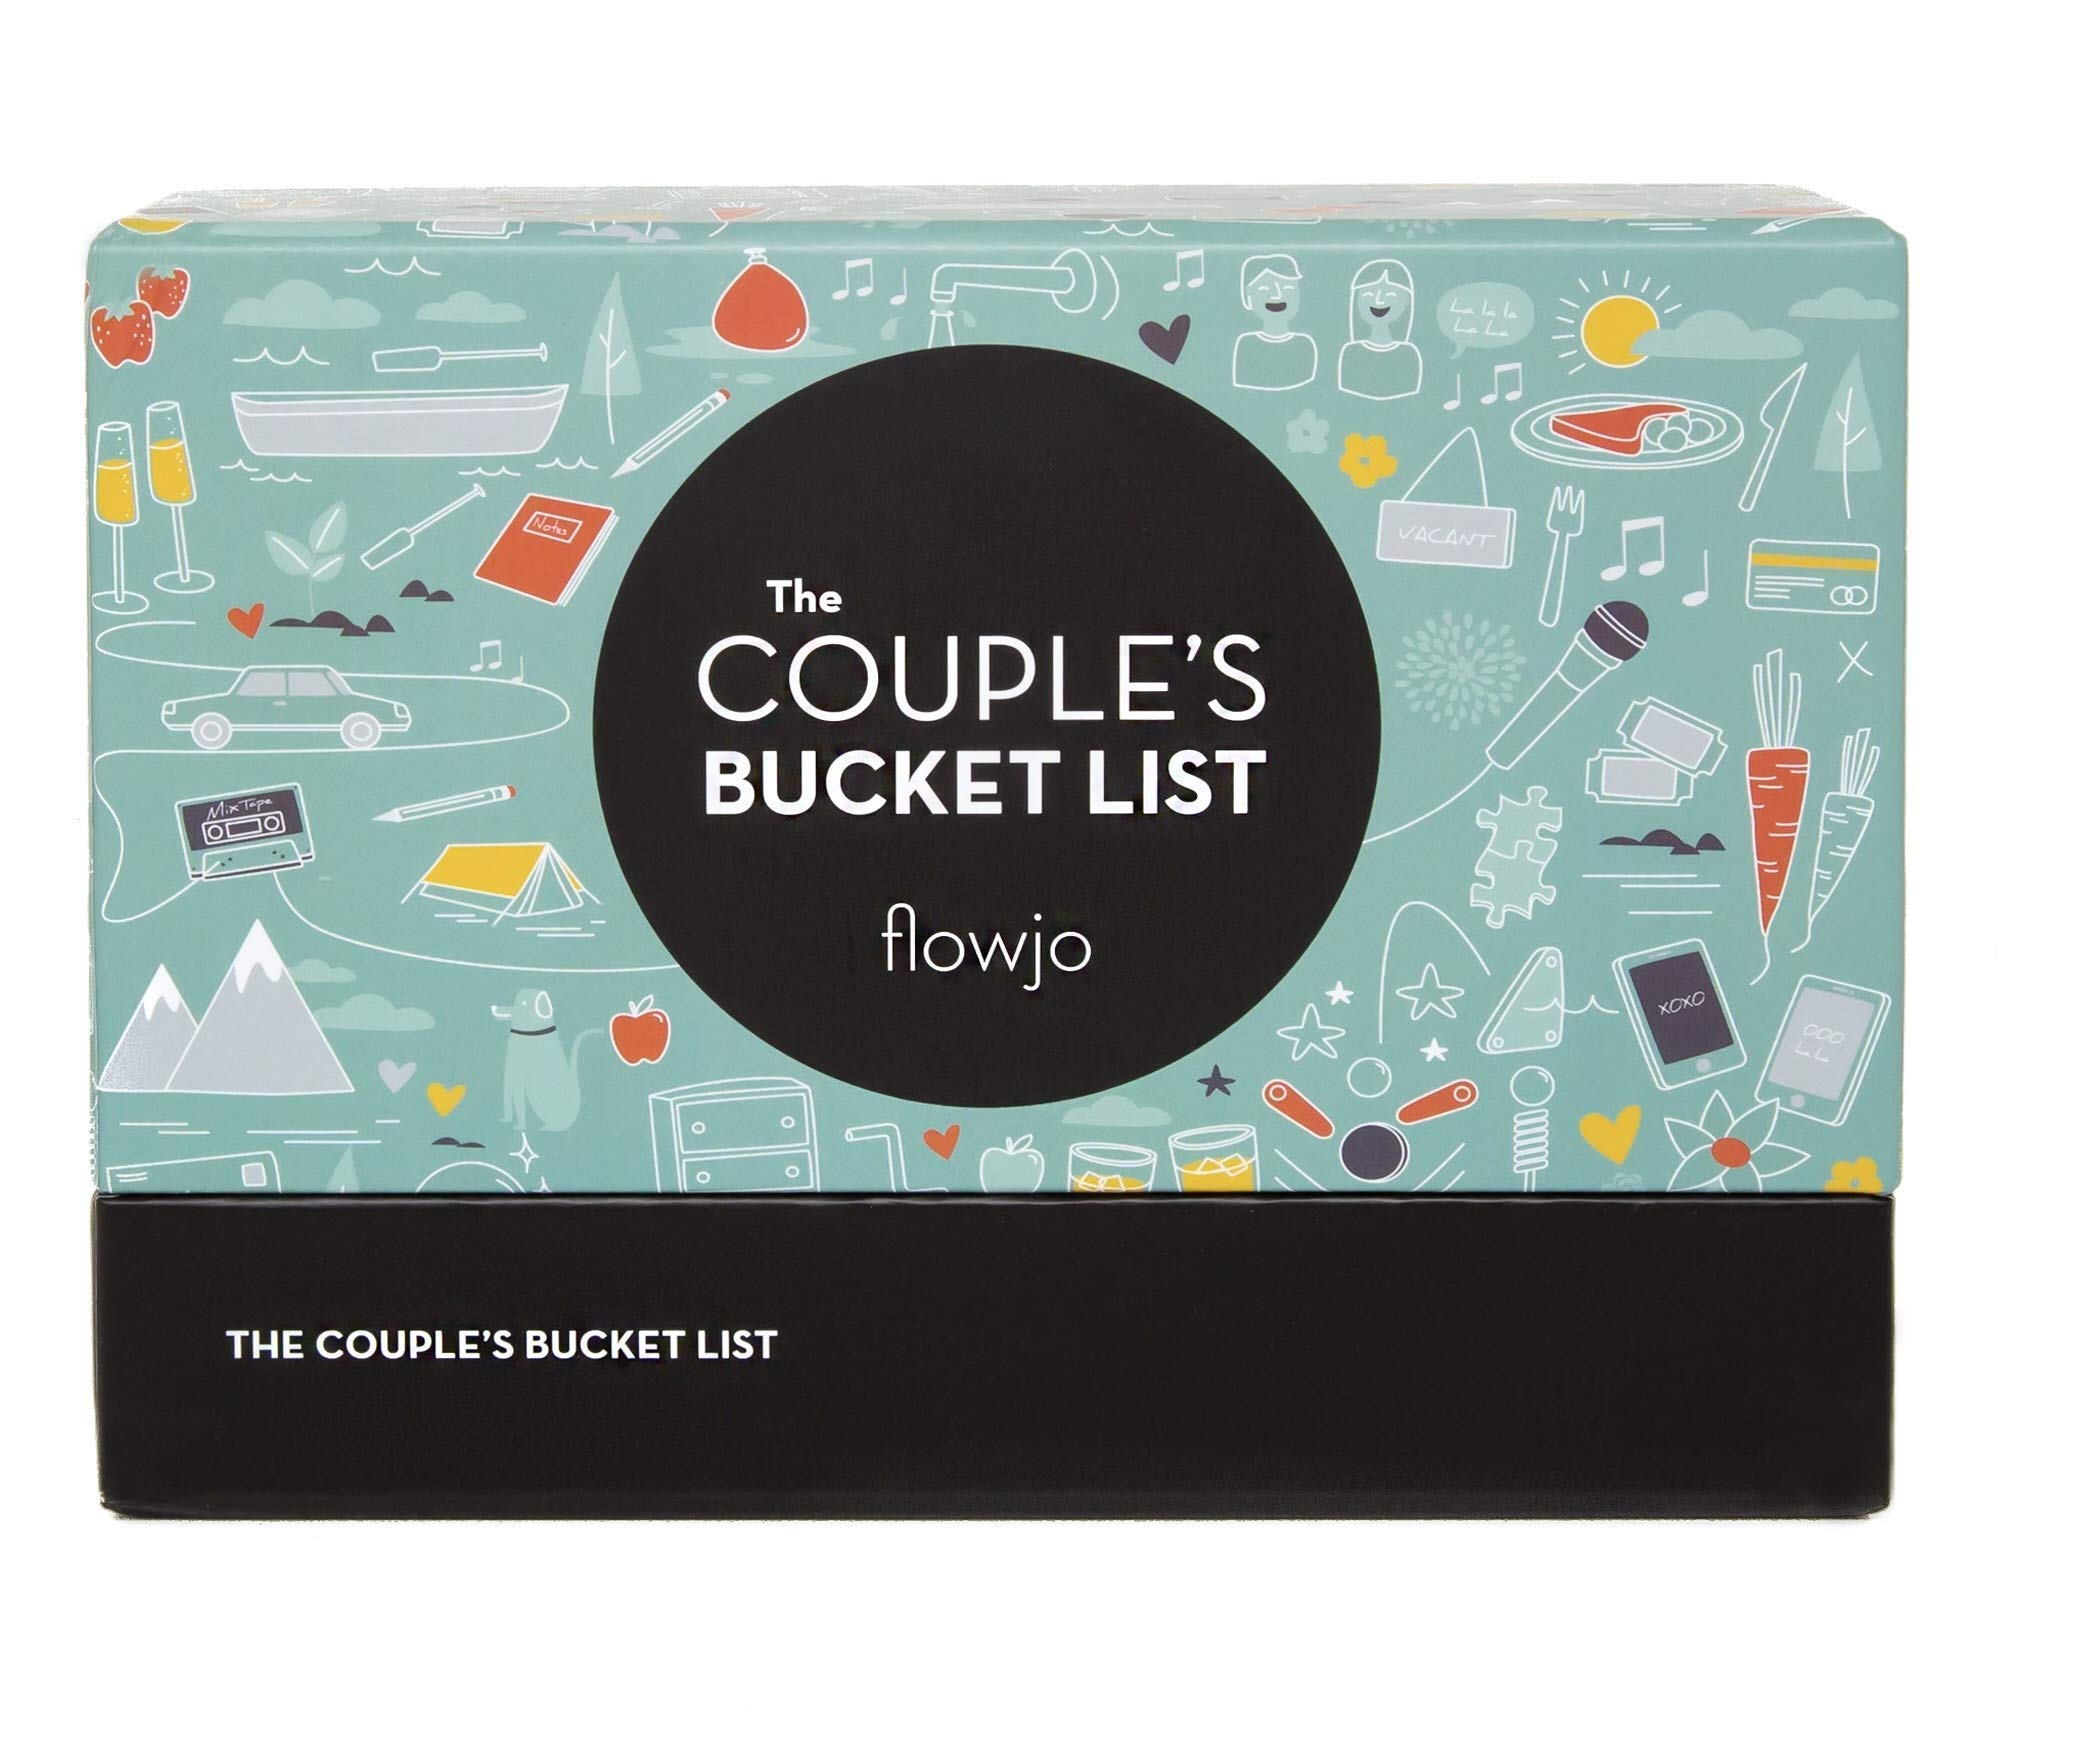 The Couple's Bucket List, 100 Fresh Date Night Idea Cards for Couples - The Perfect Bridal Shower Gift, Unique Anniversary Gift or Wedding Gift! by Flowjo (Image #1)